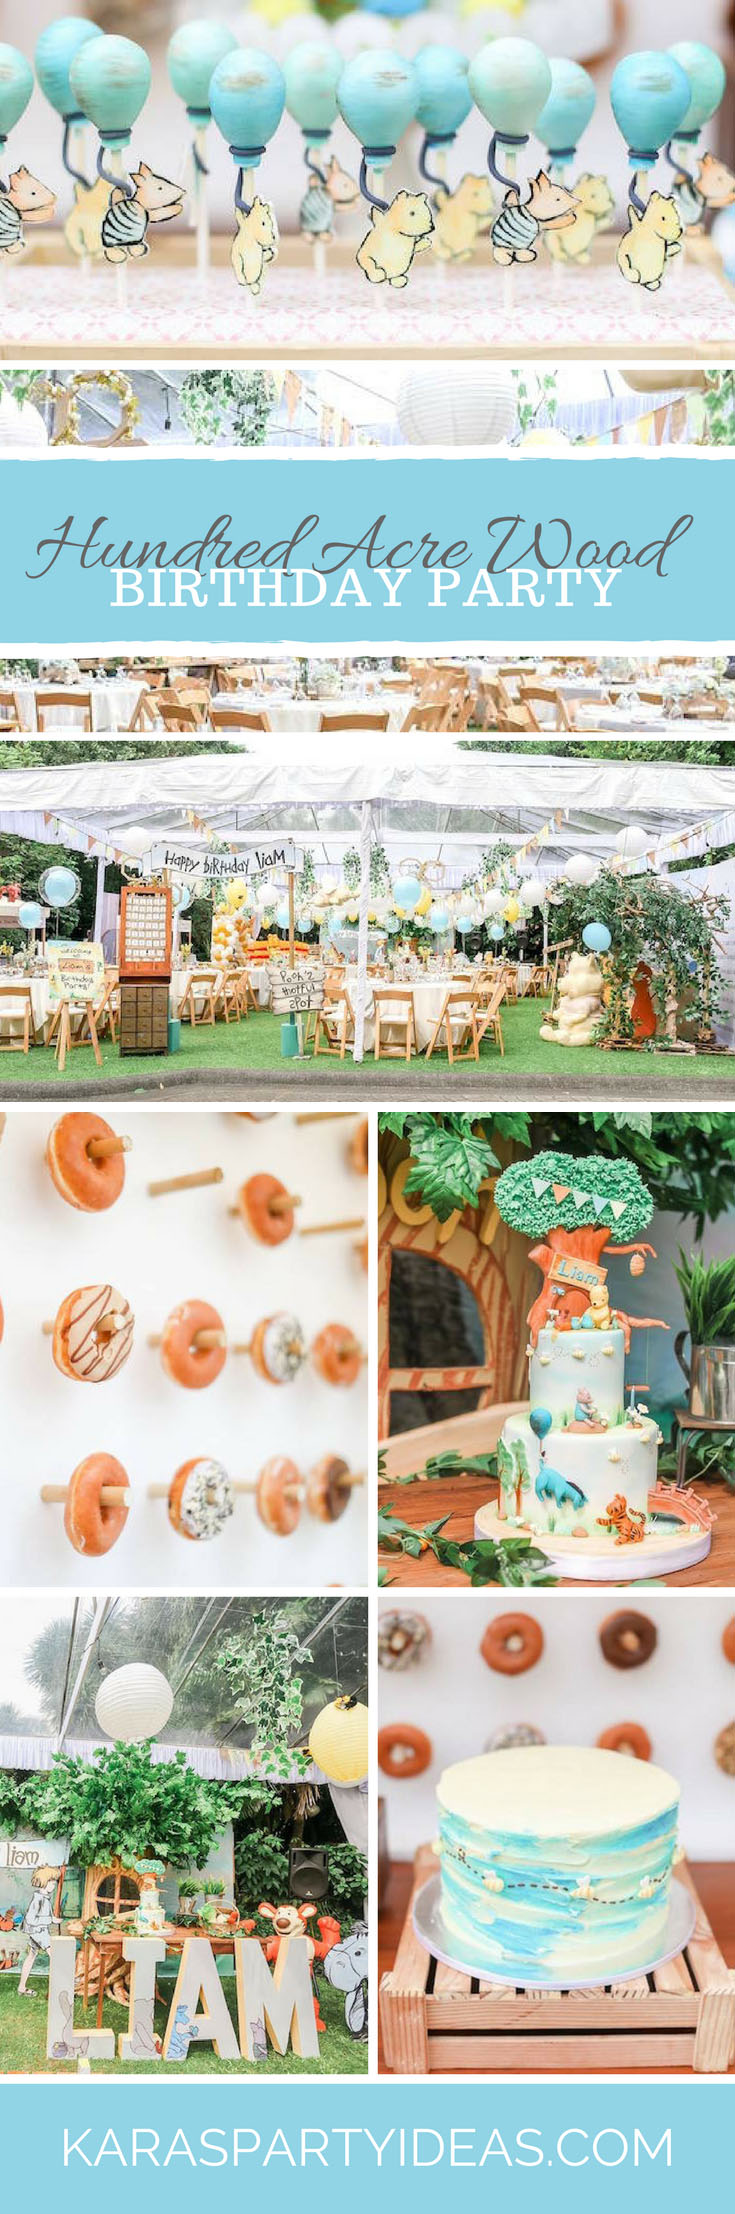 Hundred Acre Wood Birthday Party via Kara's Party Ideas - KarasPartyIdeas.com